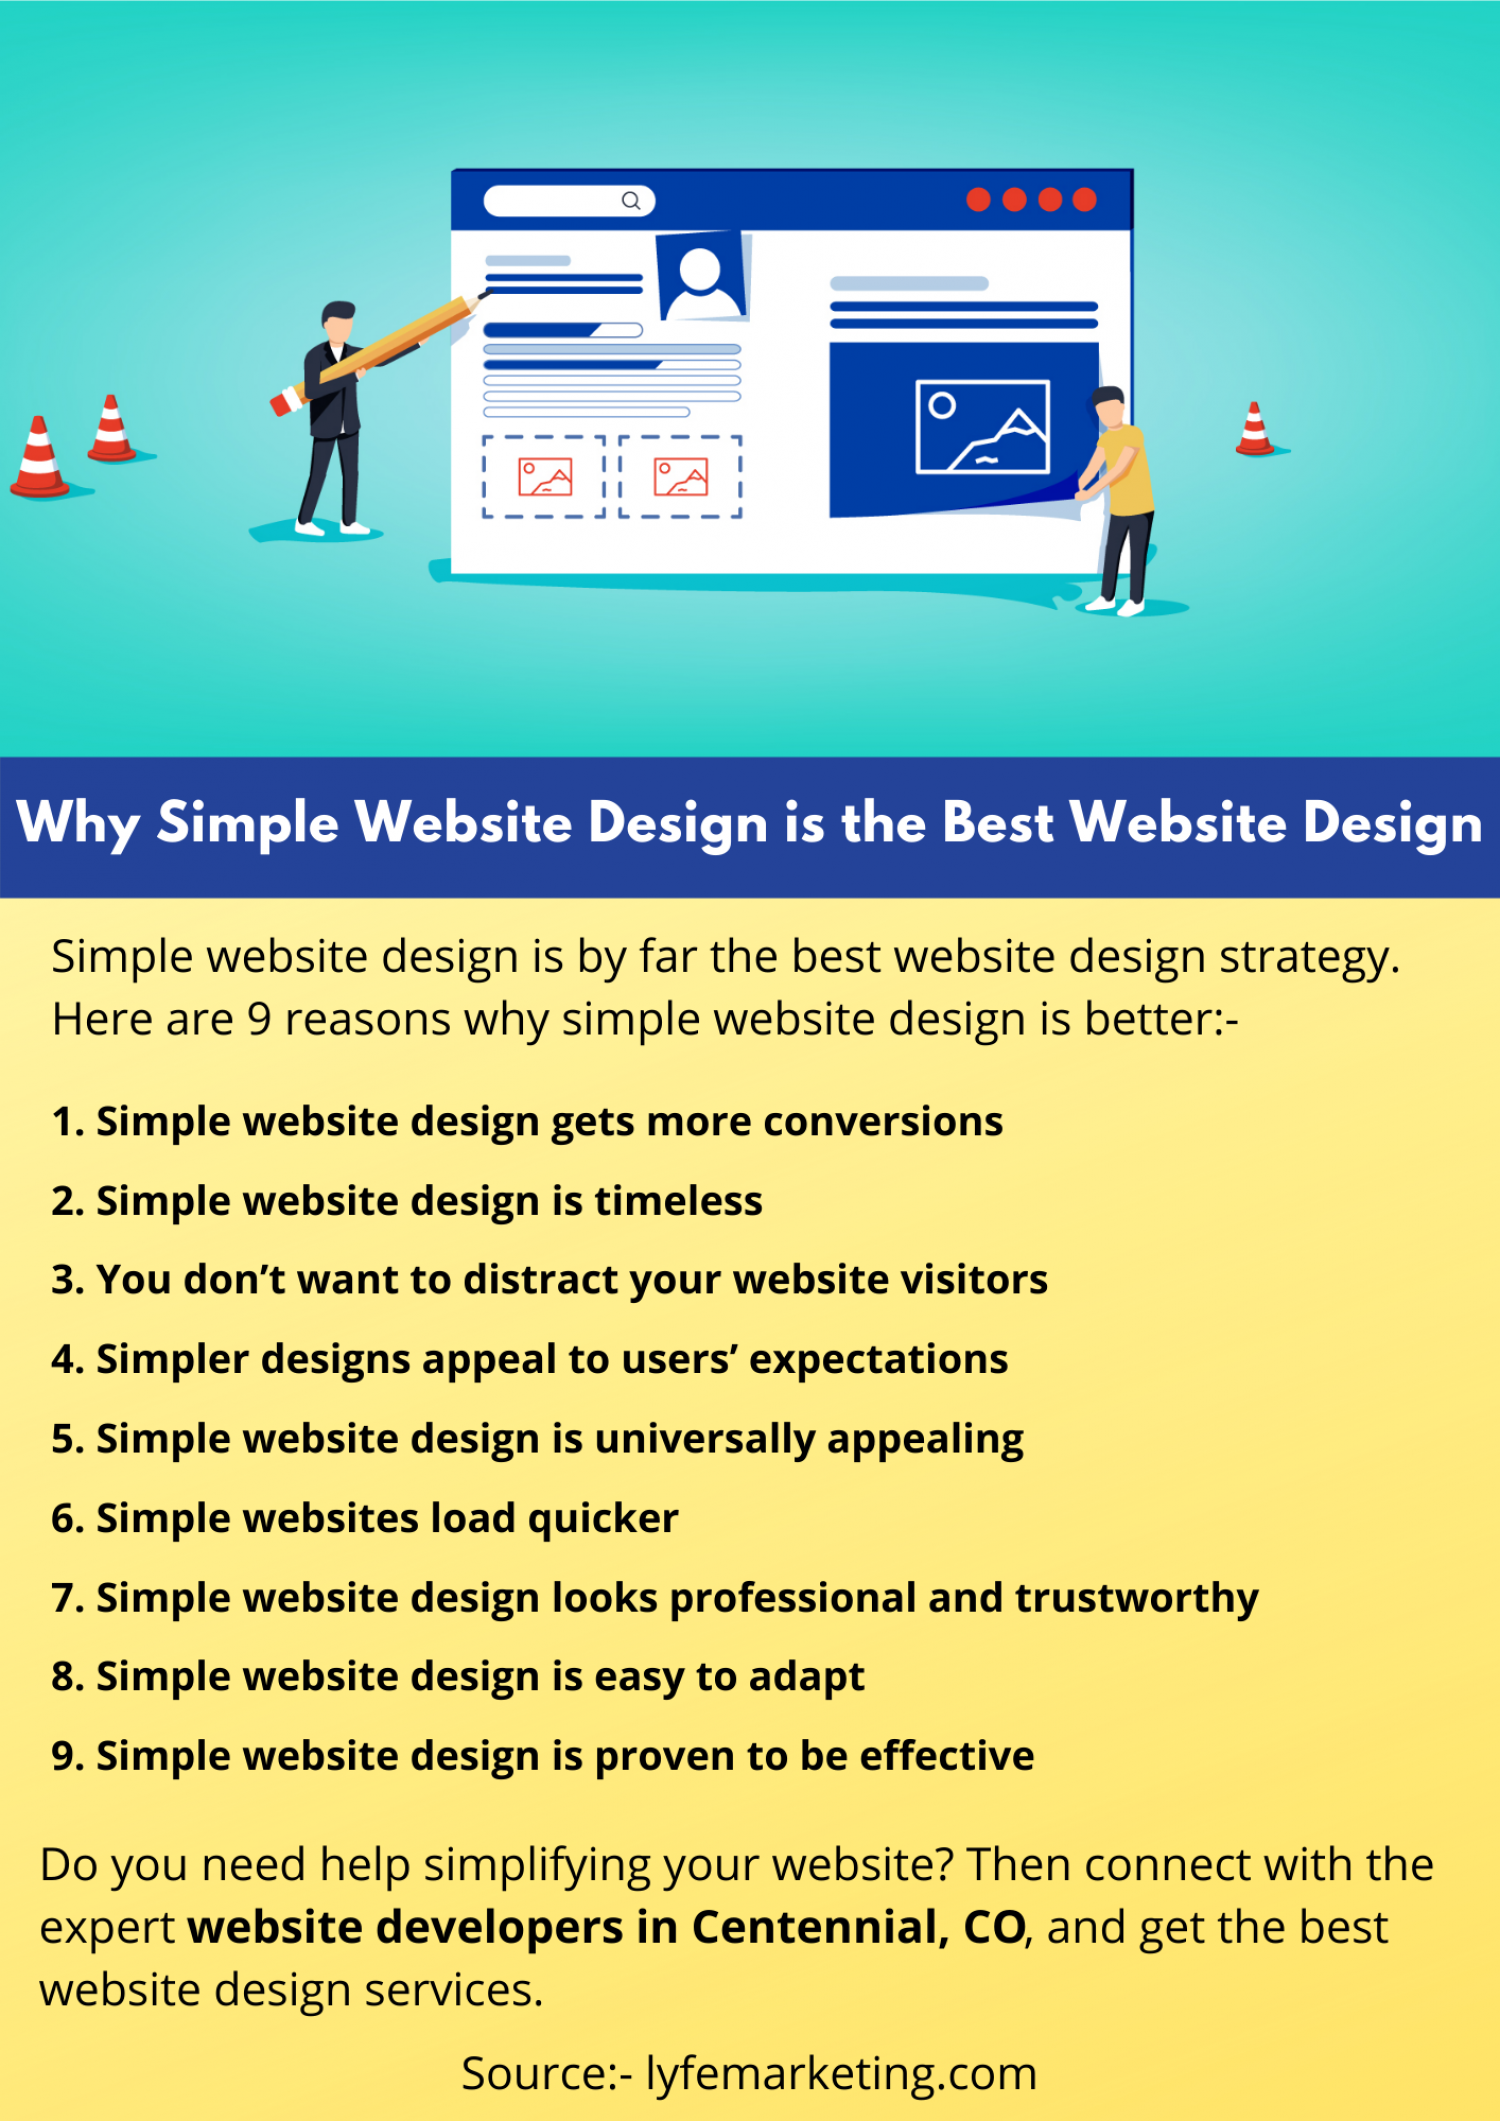 Why Simple Website Design is the Best Website Design Infographic